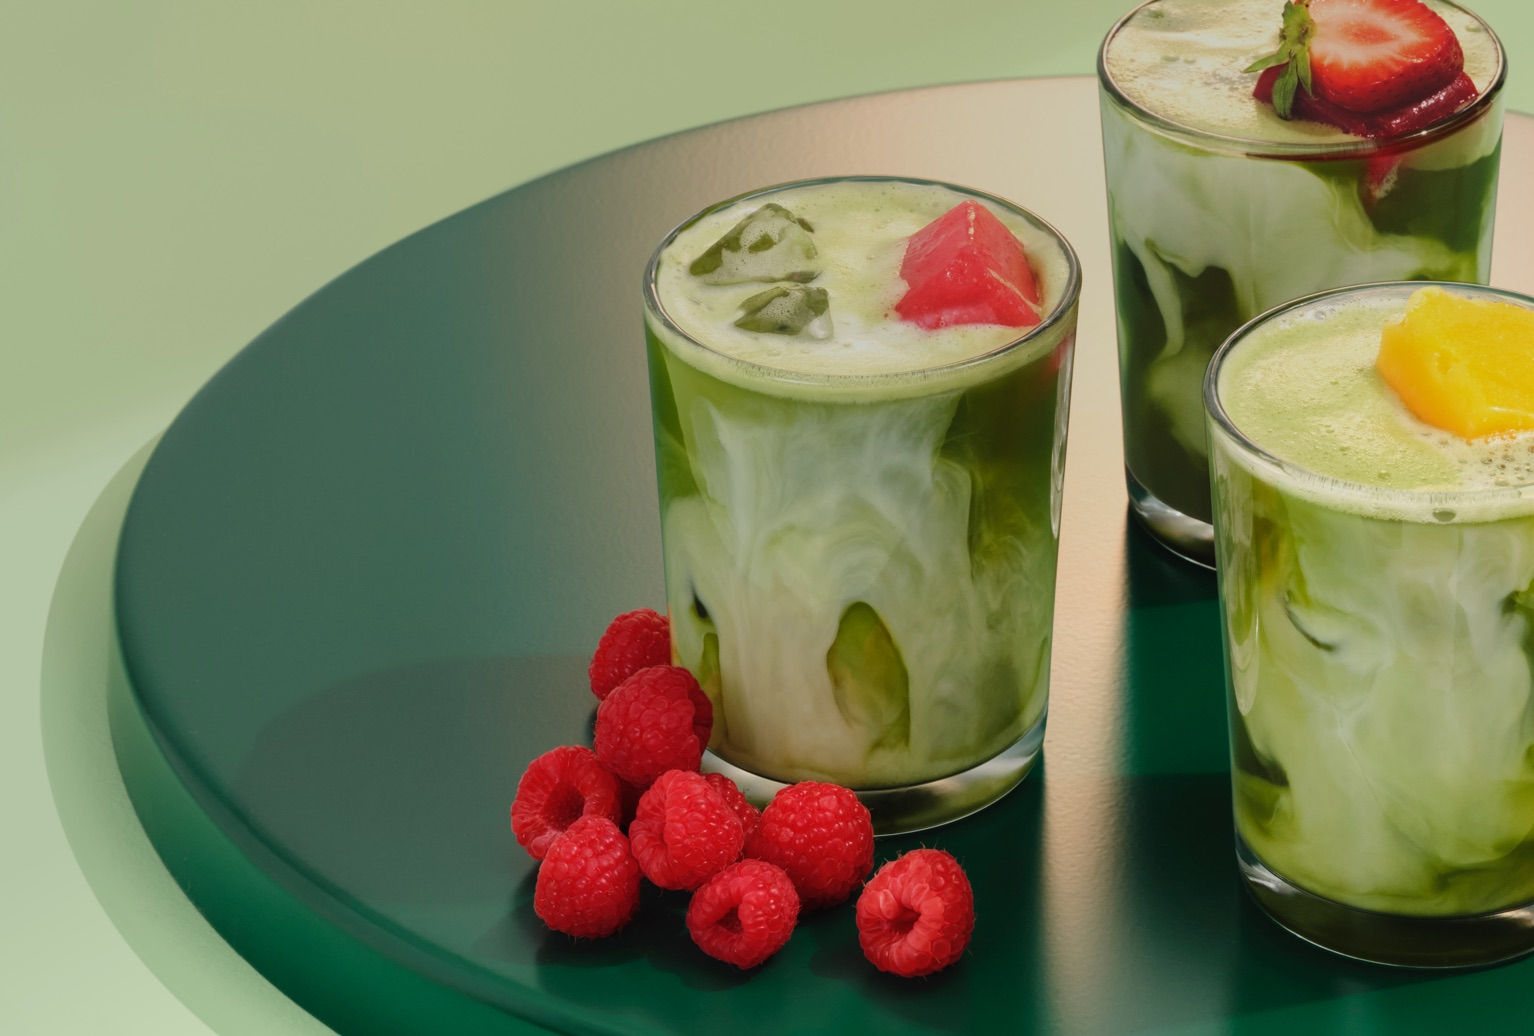 Three glasses filled with matcha placed on a circular tray with raspberries, mango and strawberries on top.